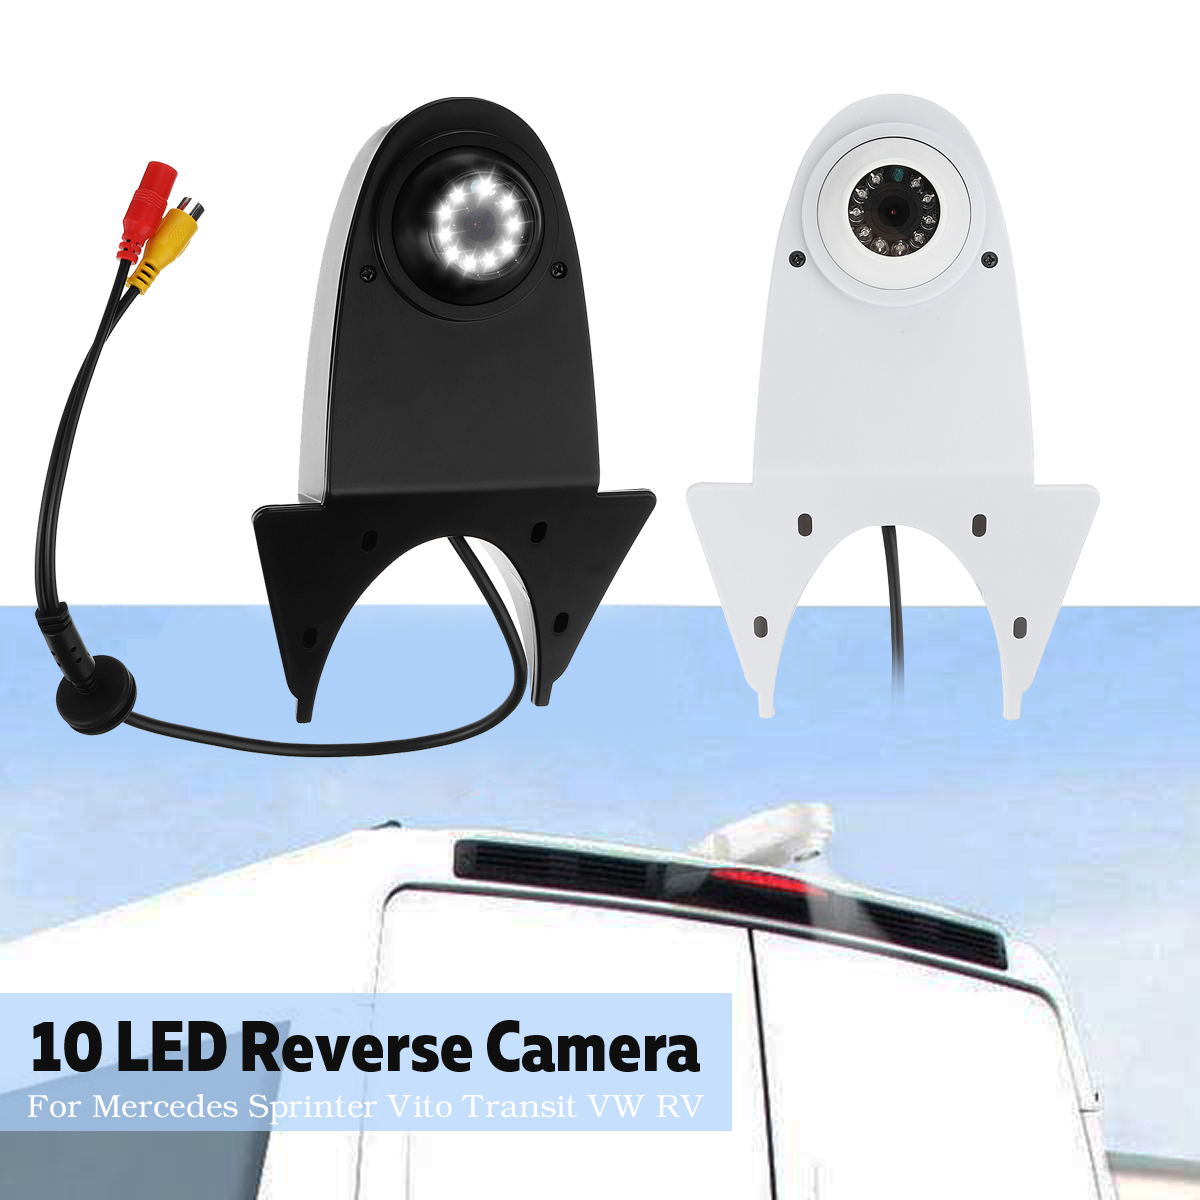 Car Rear View Reverse Camera For Mercedes for Benz Viano Sprinter Vito for VW Transporter Crafter Infrared Vehicle Backup Camera